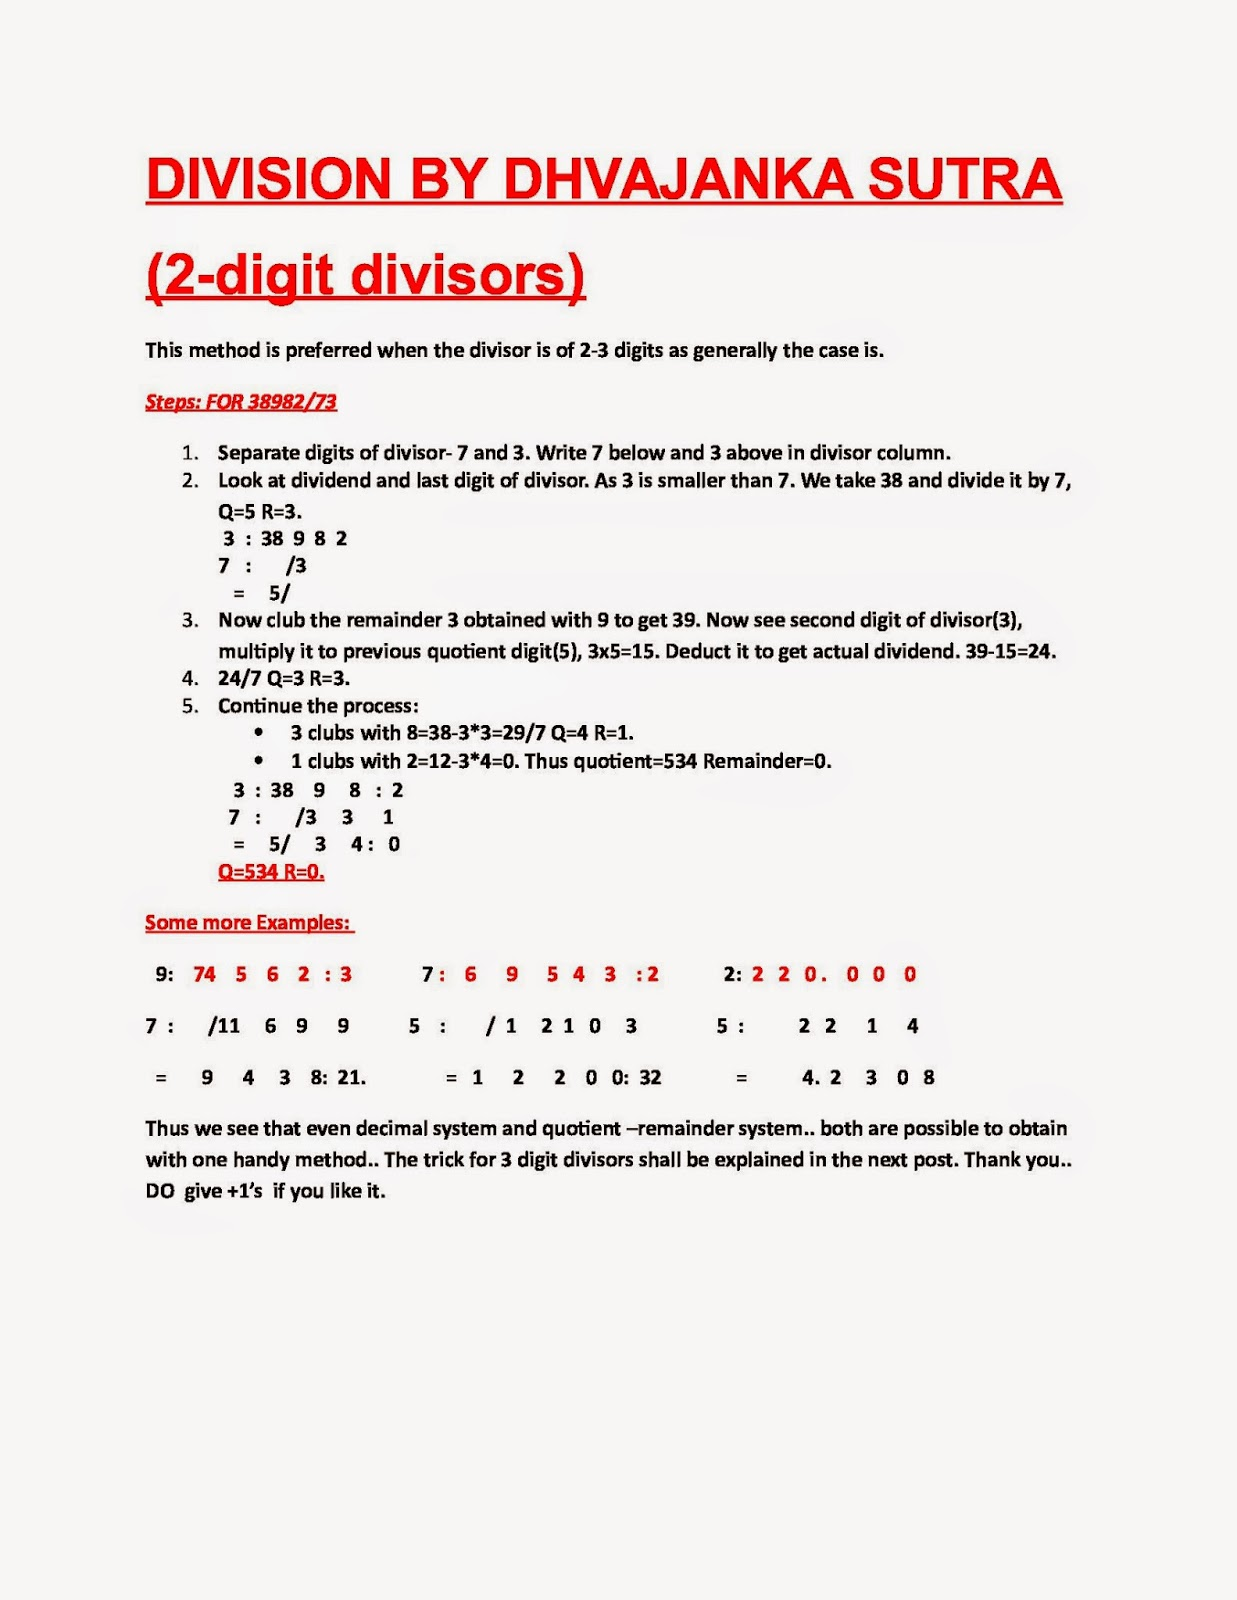 A new method of division for 2- digit divisors..A very good application of  algebra to arithmetic.. lets see who cracks its logic